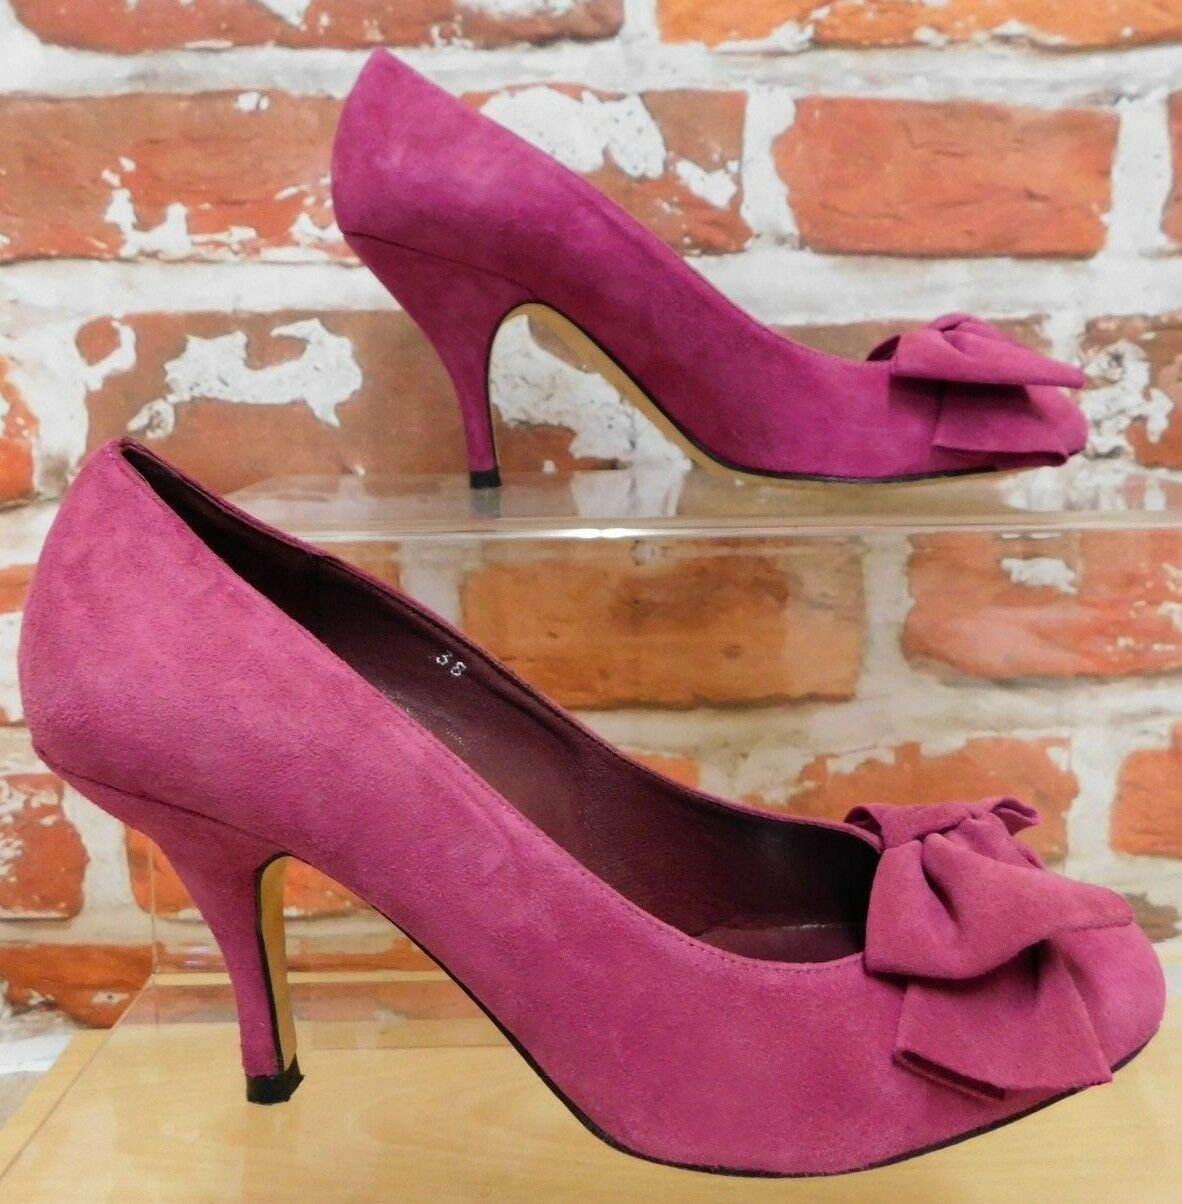 House of Bruar fuchsia suede bow front court shoes stiletto heel UK 5 Hogmanay